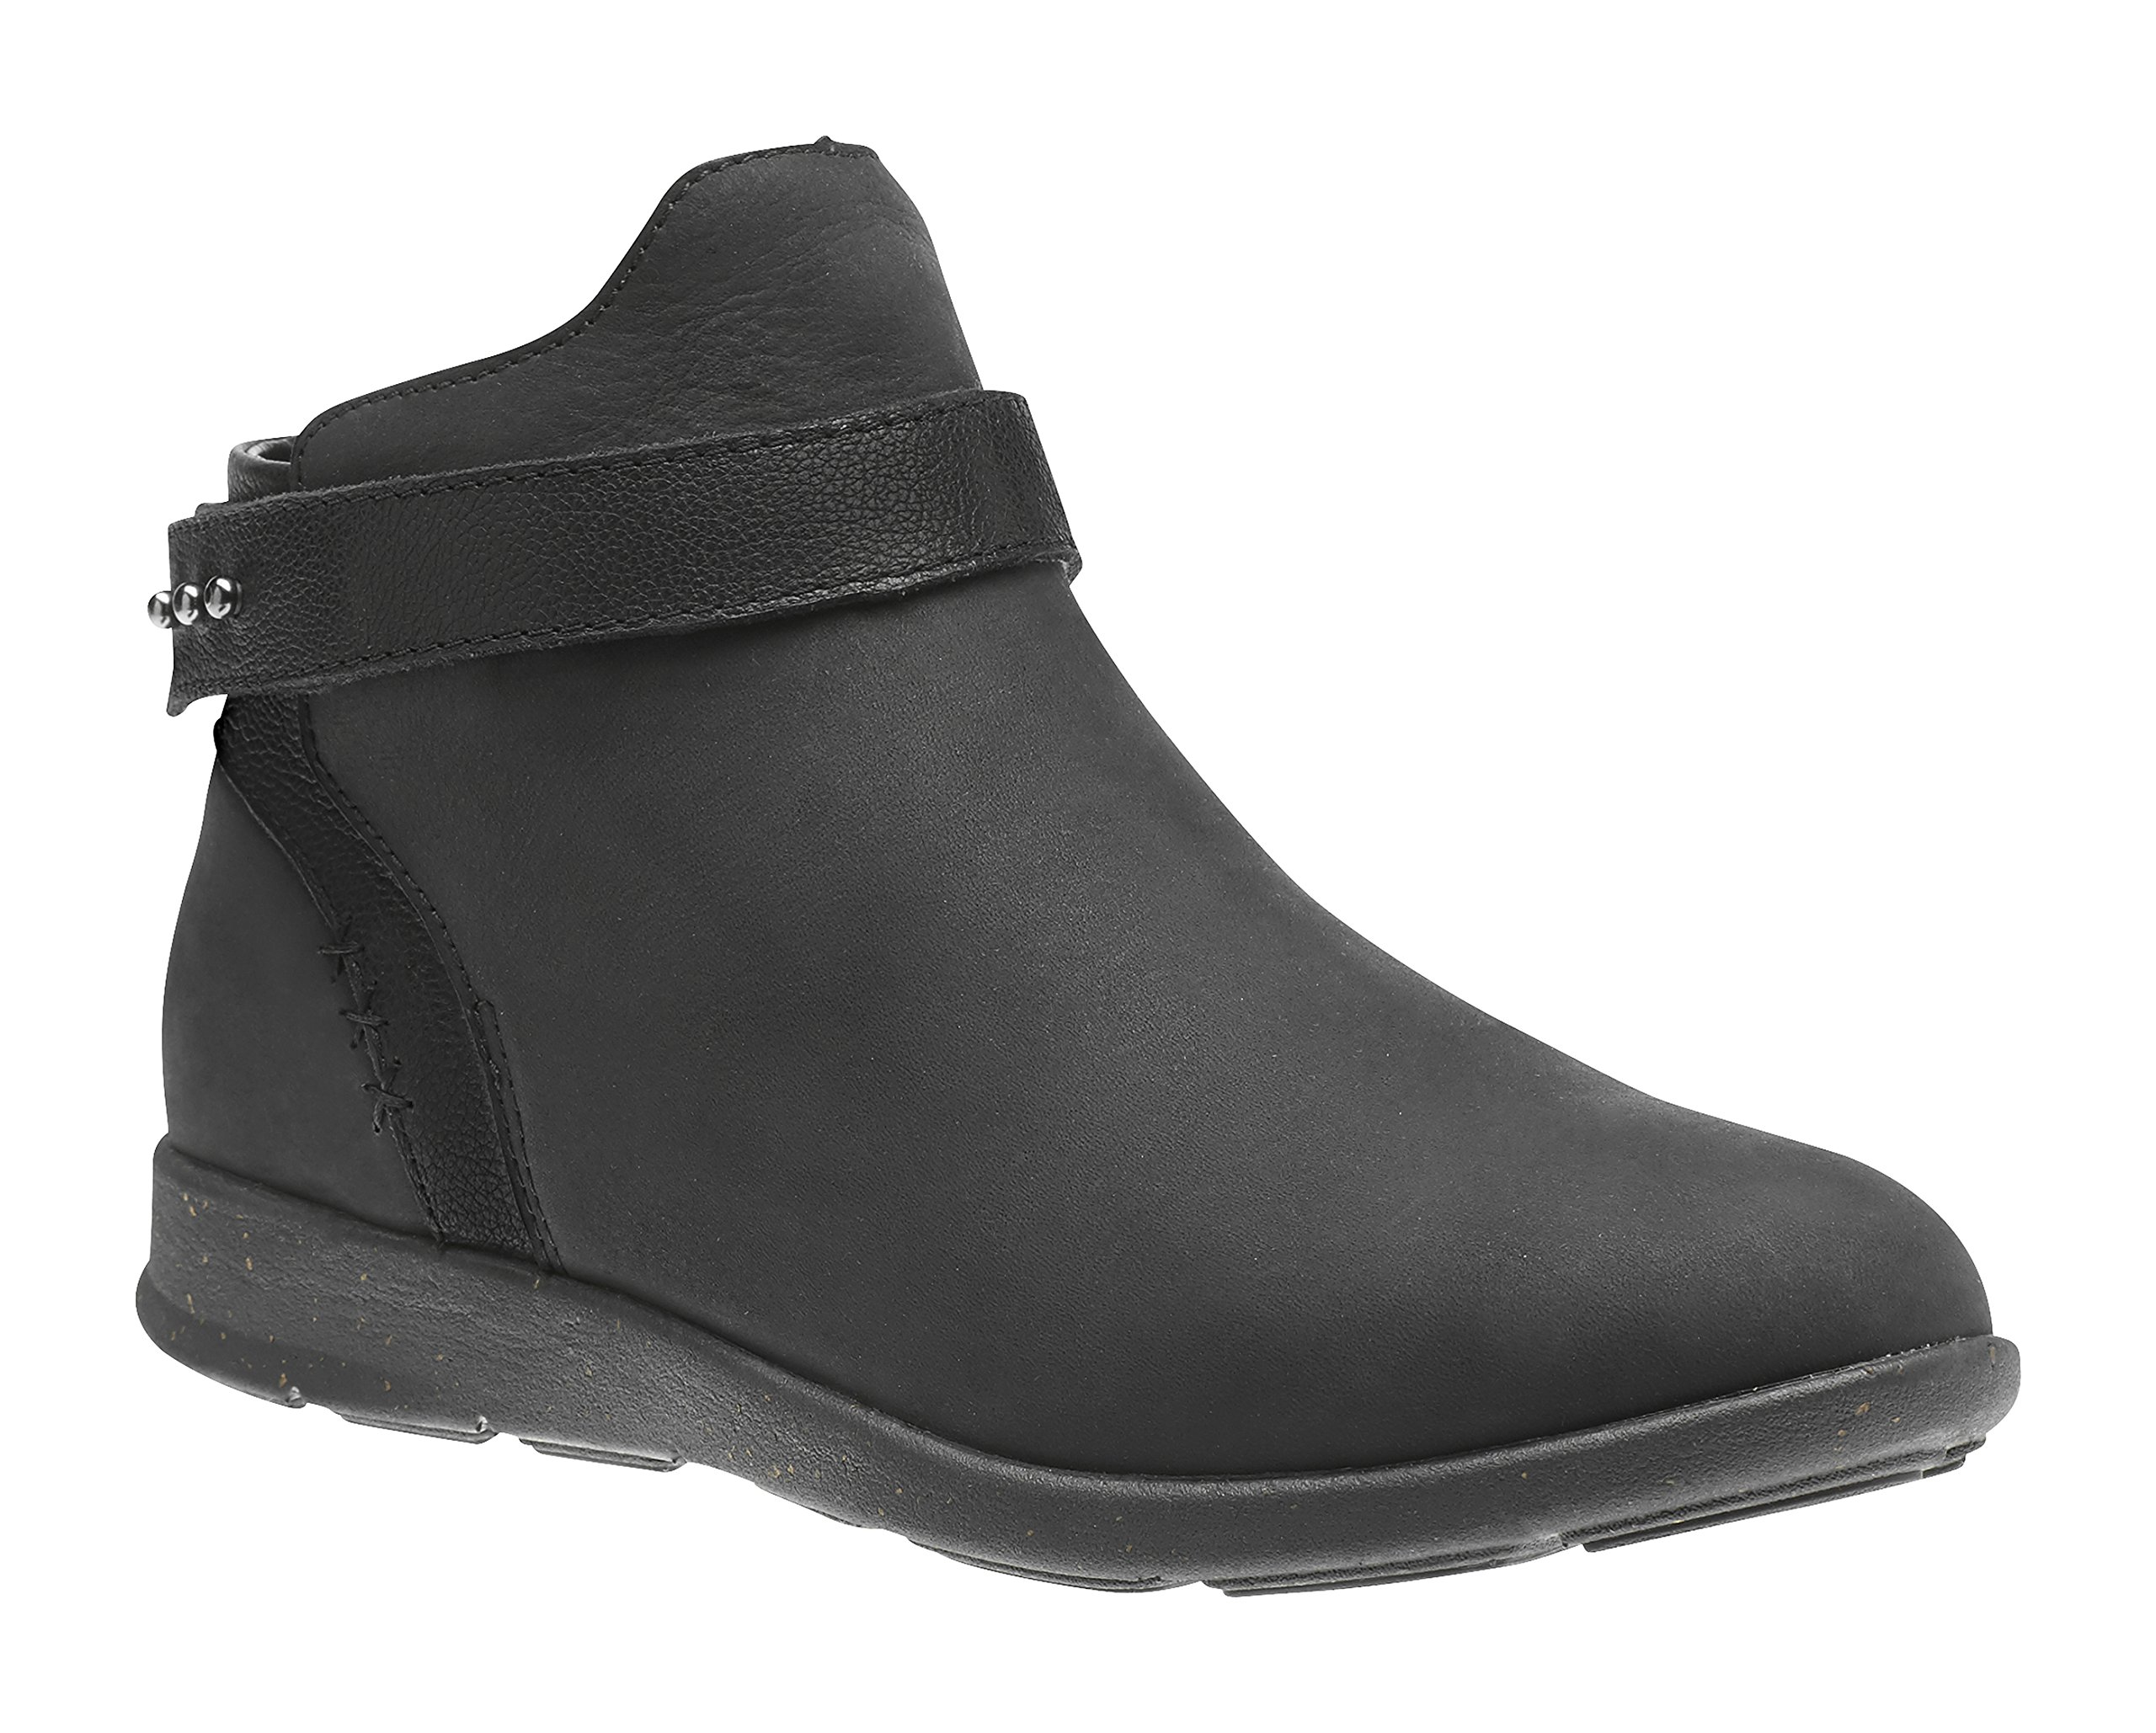 Superfeet Ash Women's Comfort Casual Boot, Black/Black, Full Grain Leather, Women's 8 US